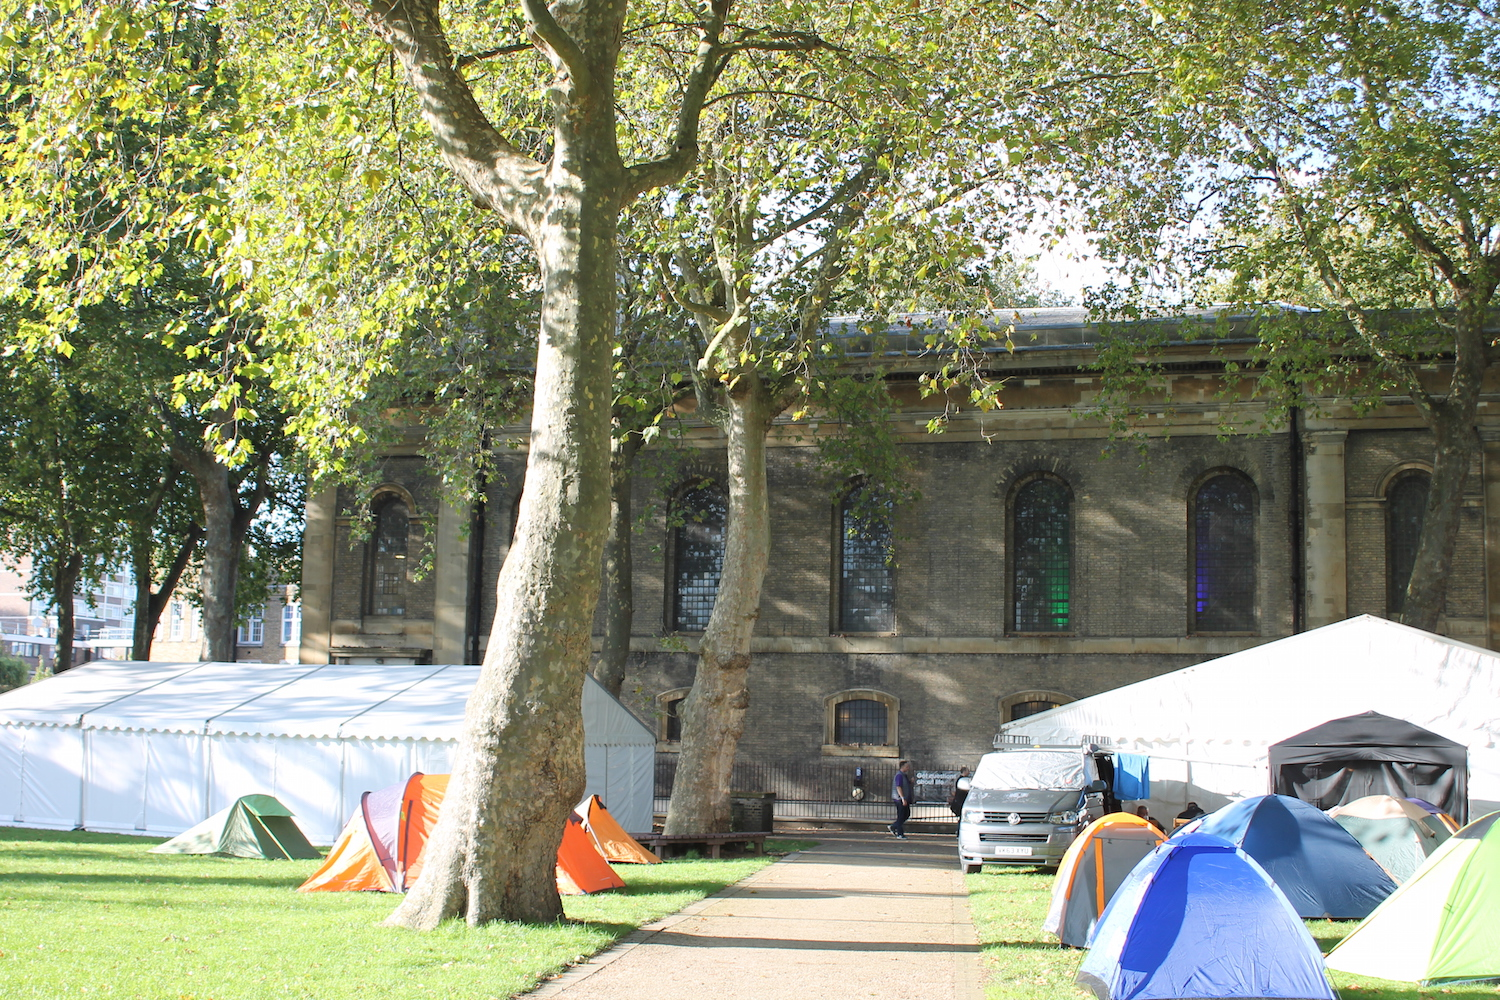 church & tents